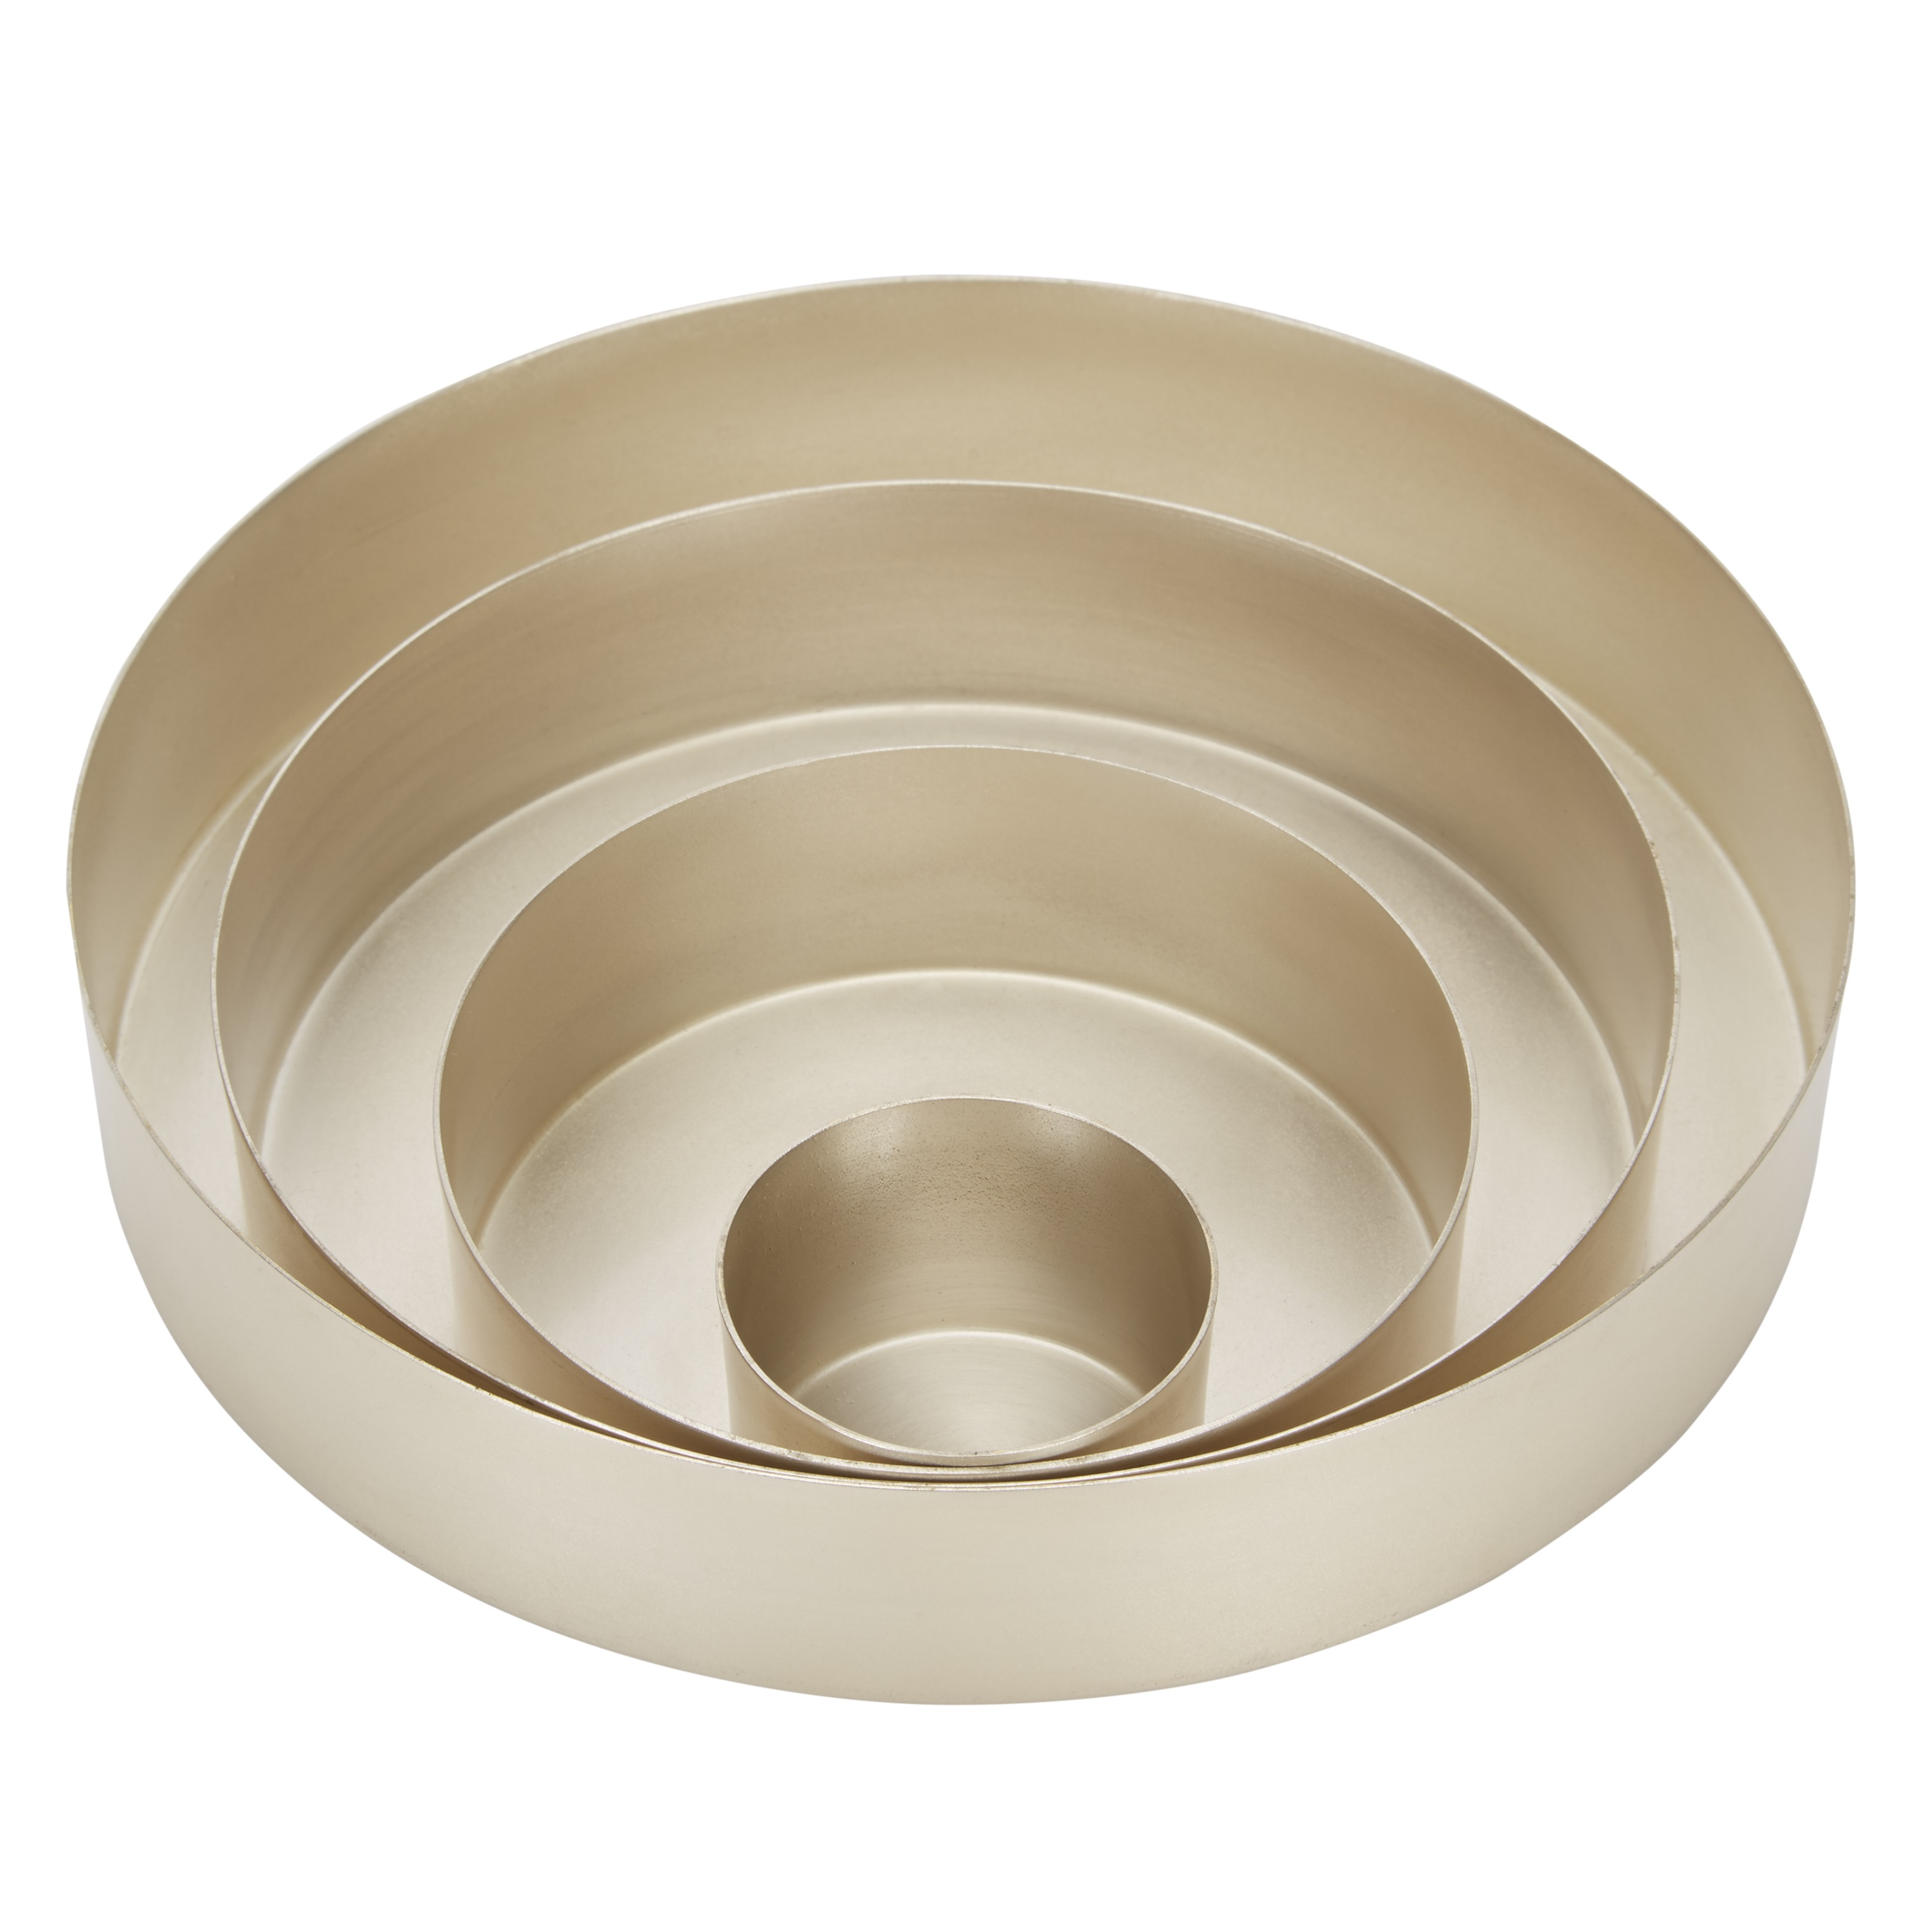 Orbit tray Tom Dixon